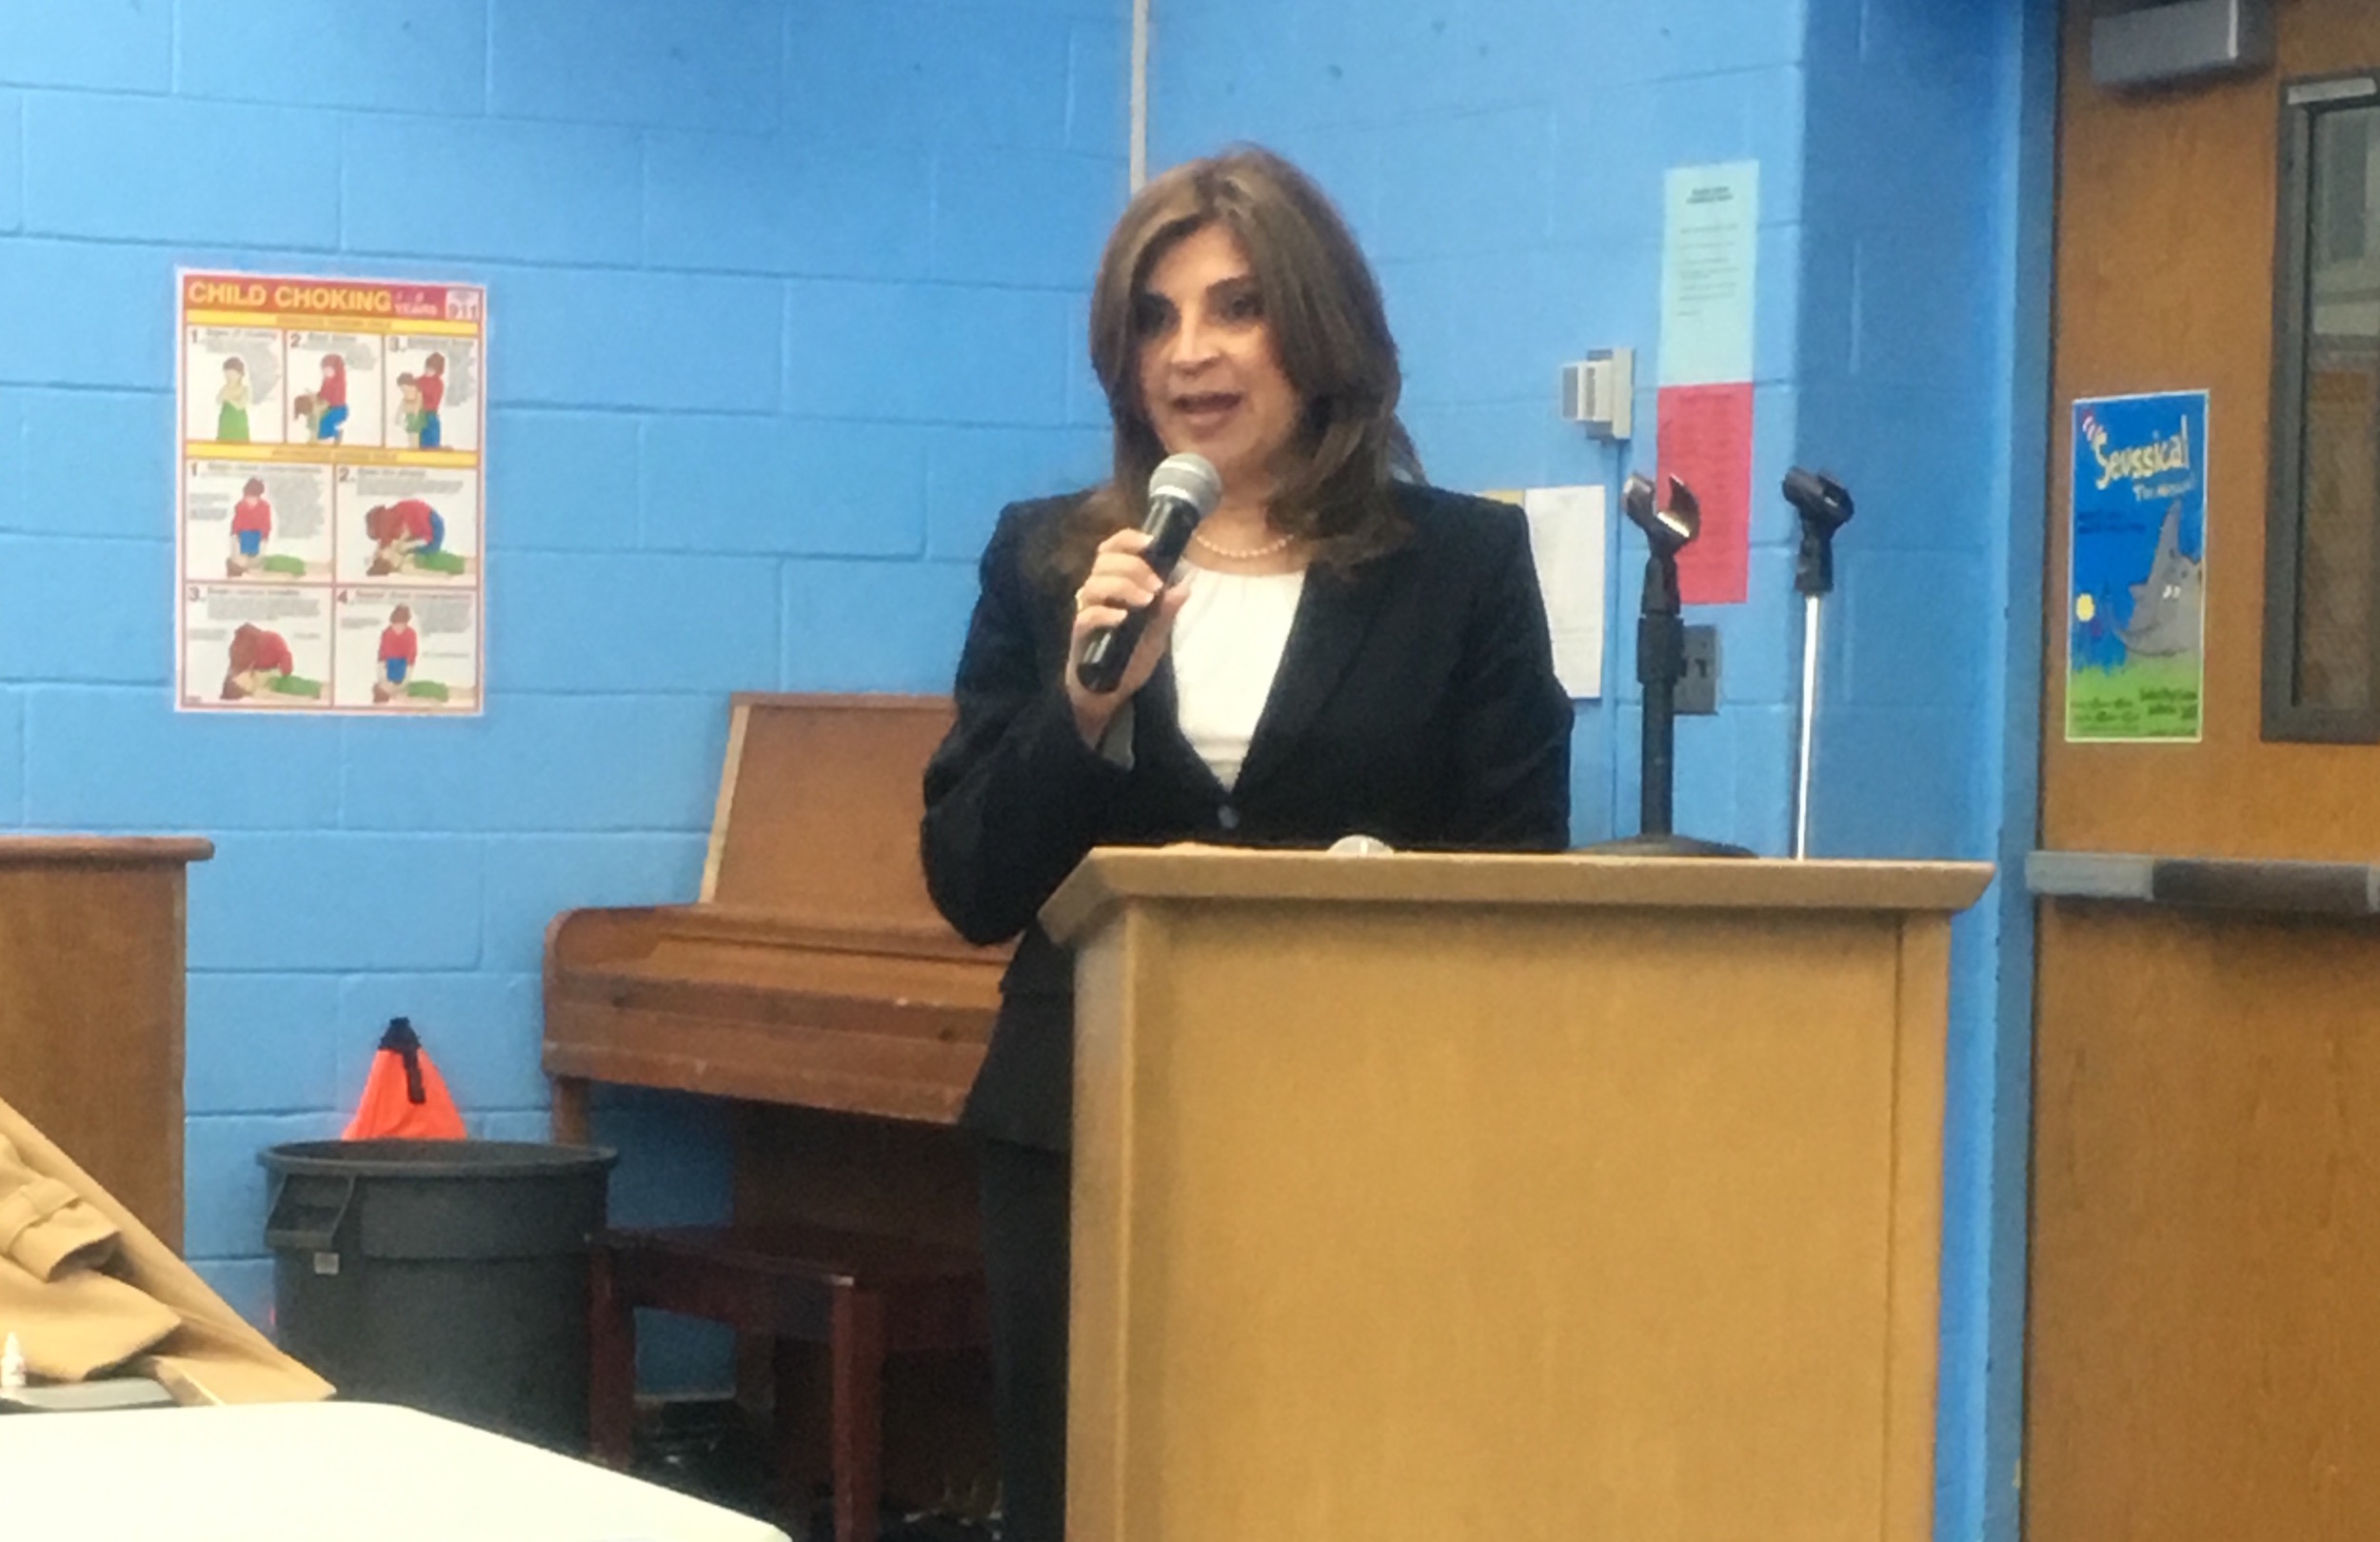 Pecora introduced herself to the community at the March 2 Board of Education meeting.